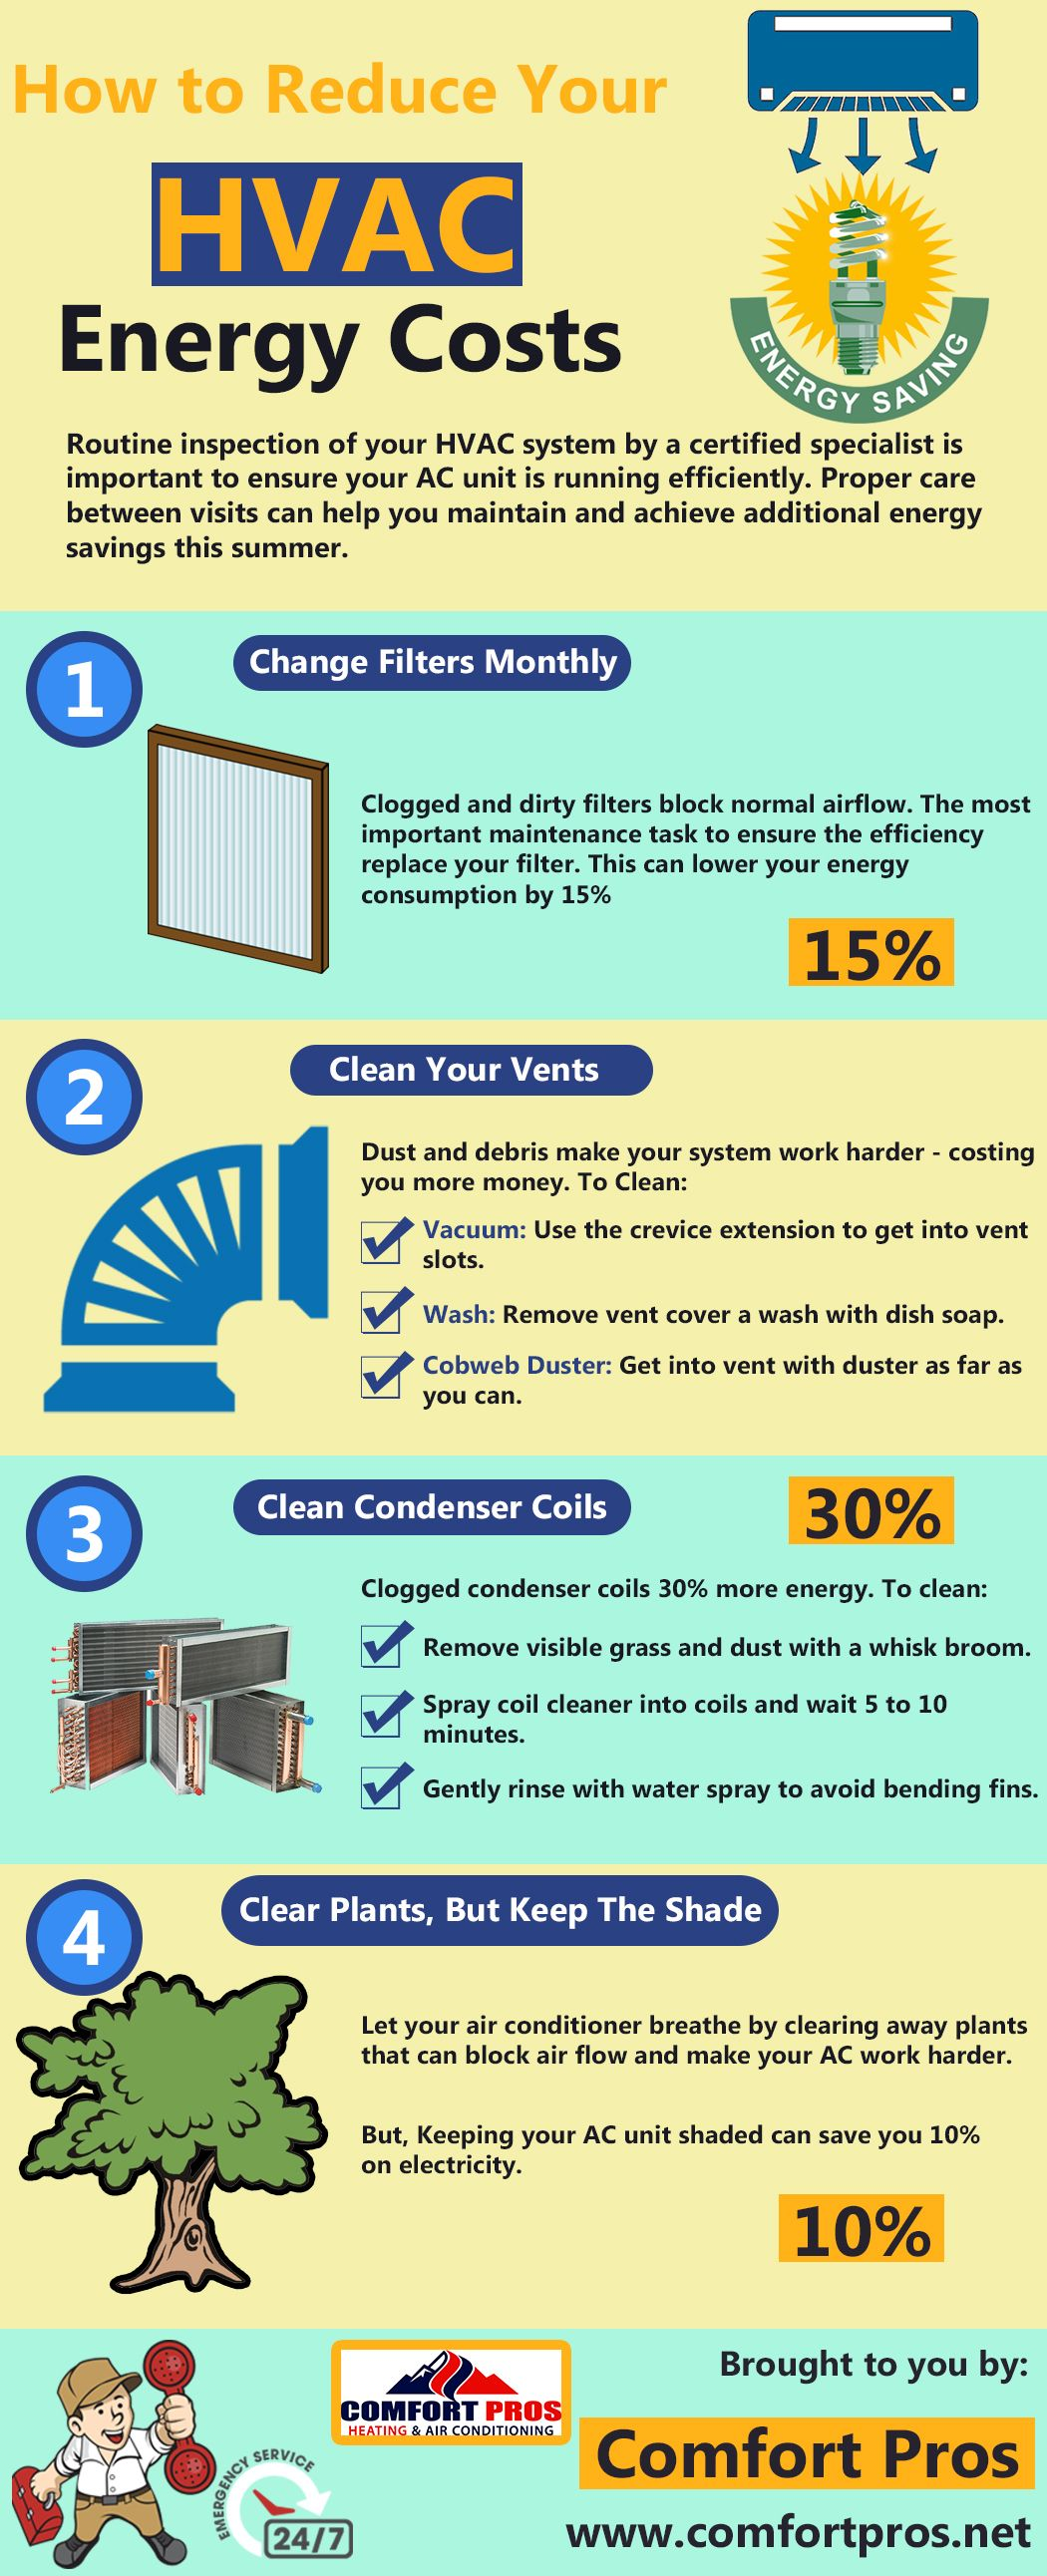 How to Reduce Your HVAC Energy Costs Heating and air